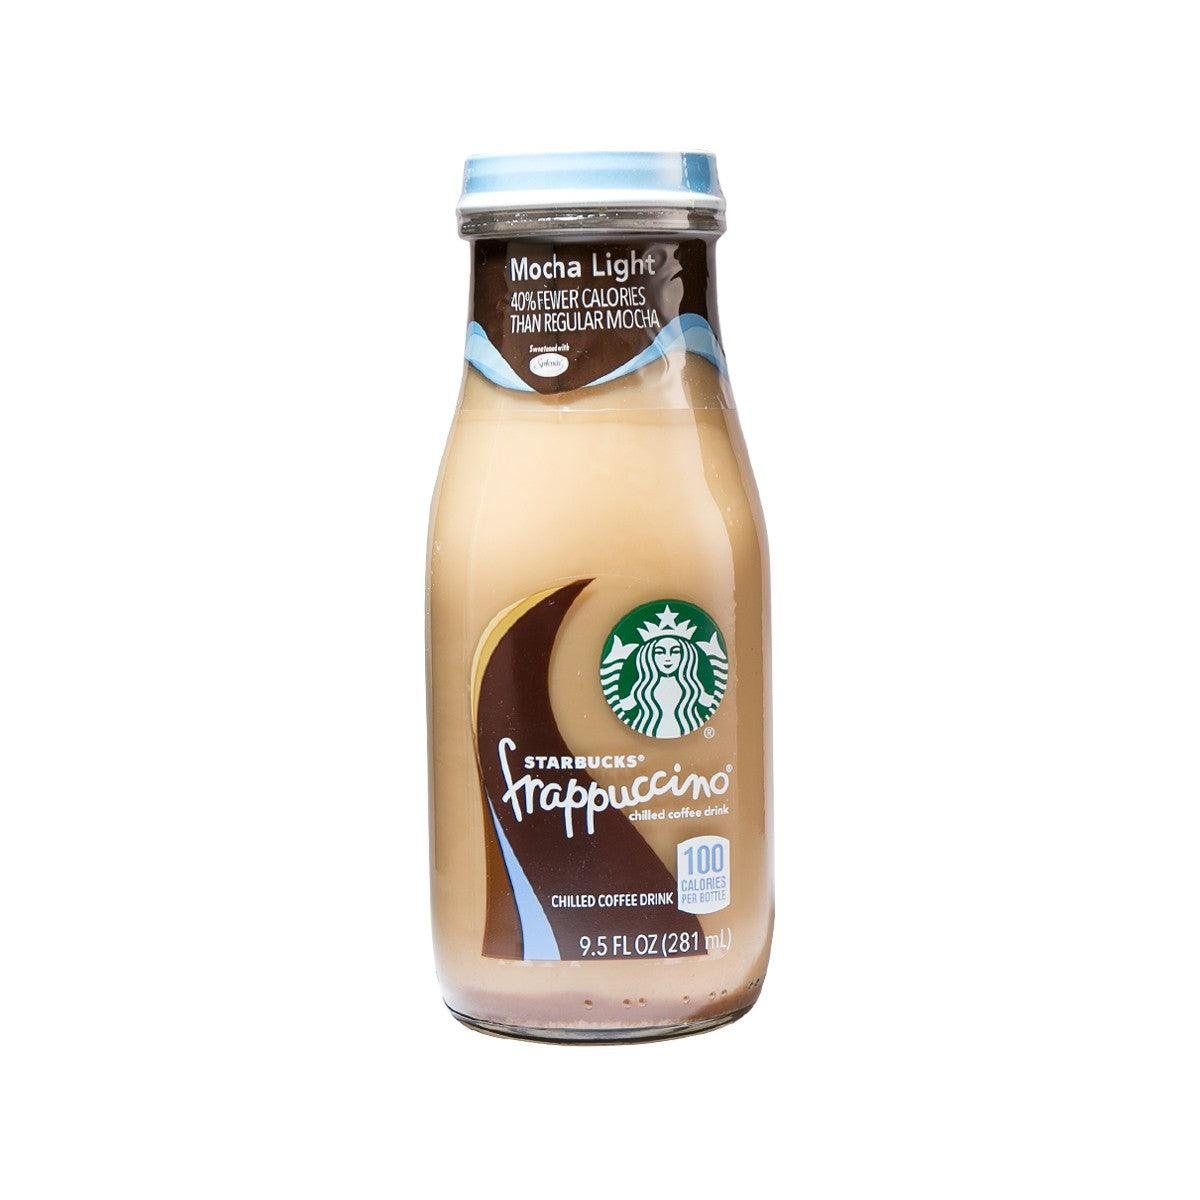 Starbucks Frappuccino Coffee Drink   Mocha Light(281mL)